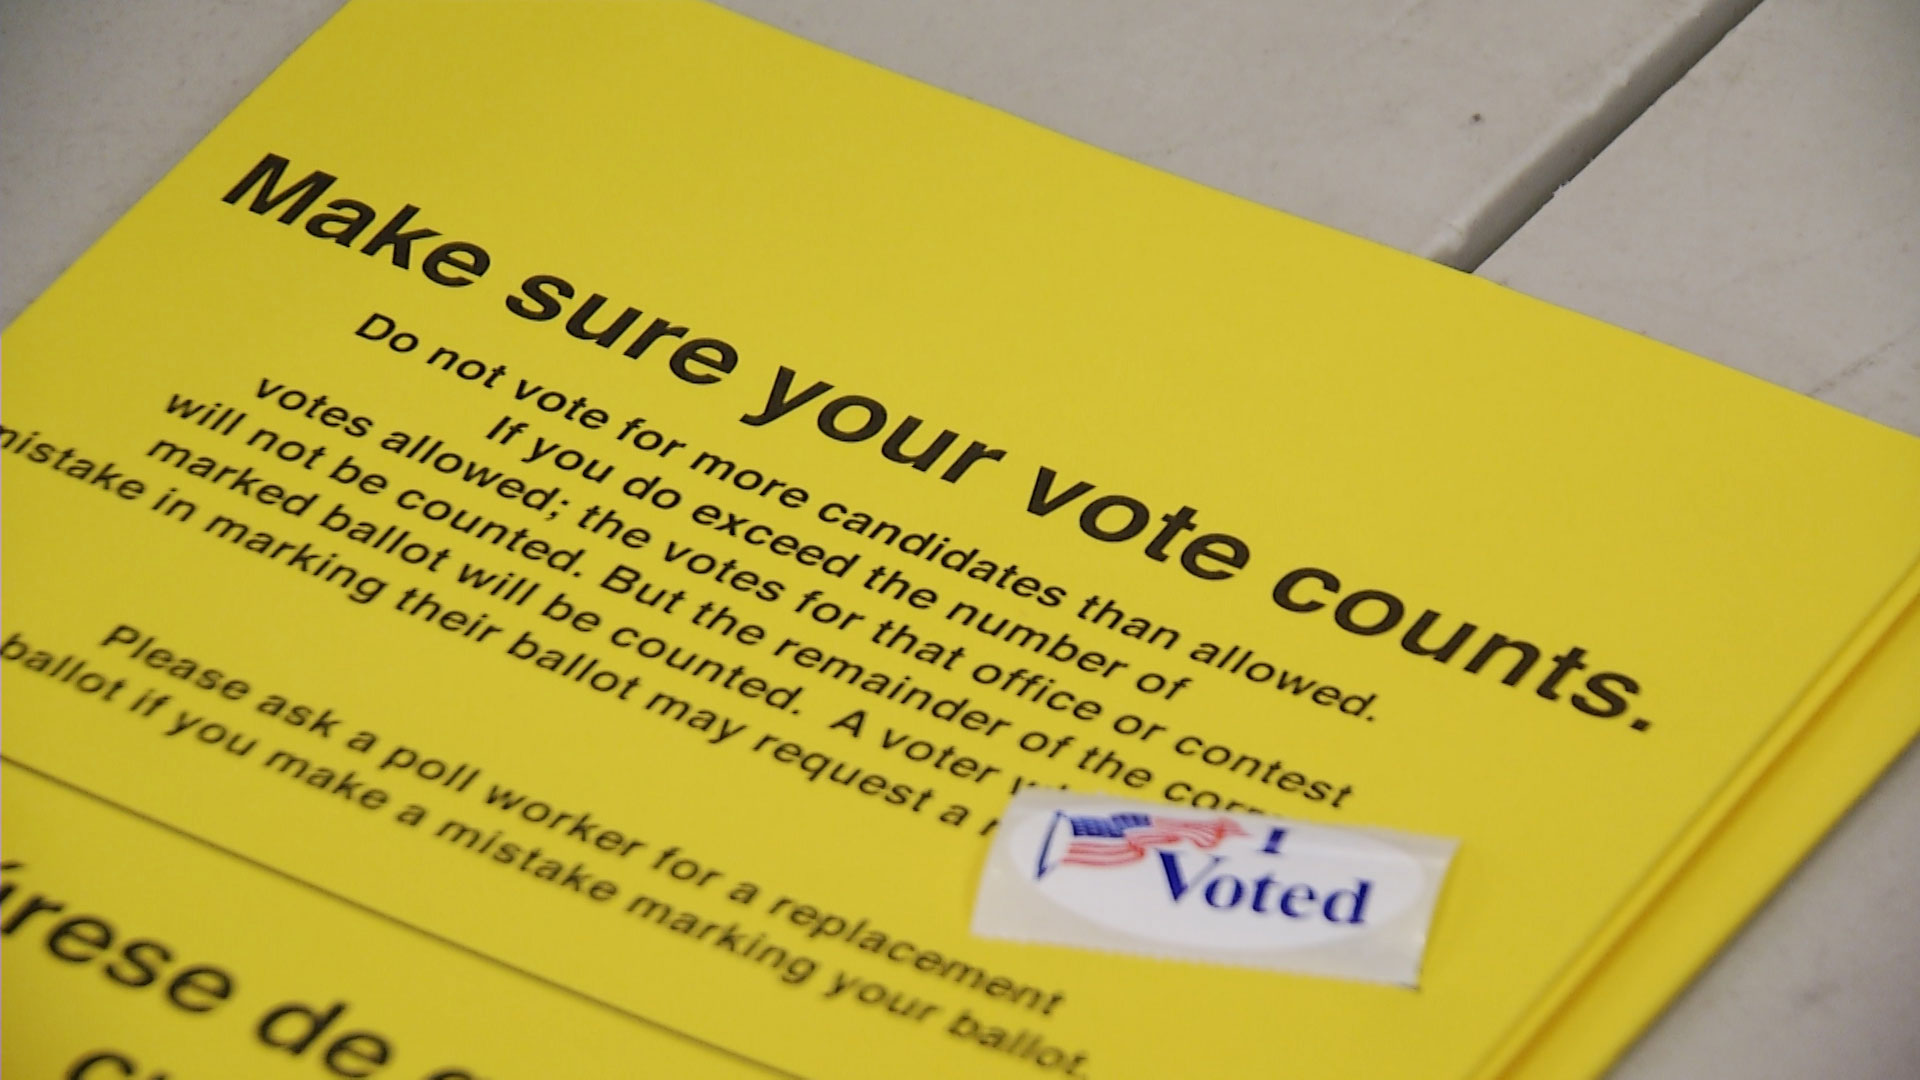 File image of a voting flyer in Pima County.